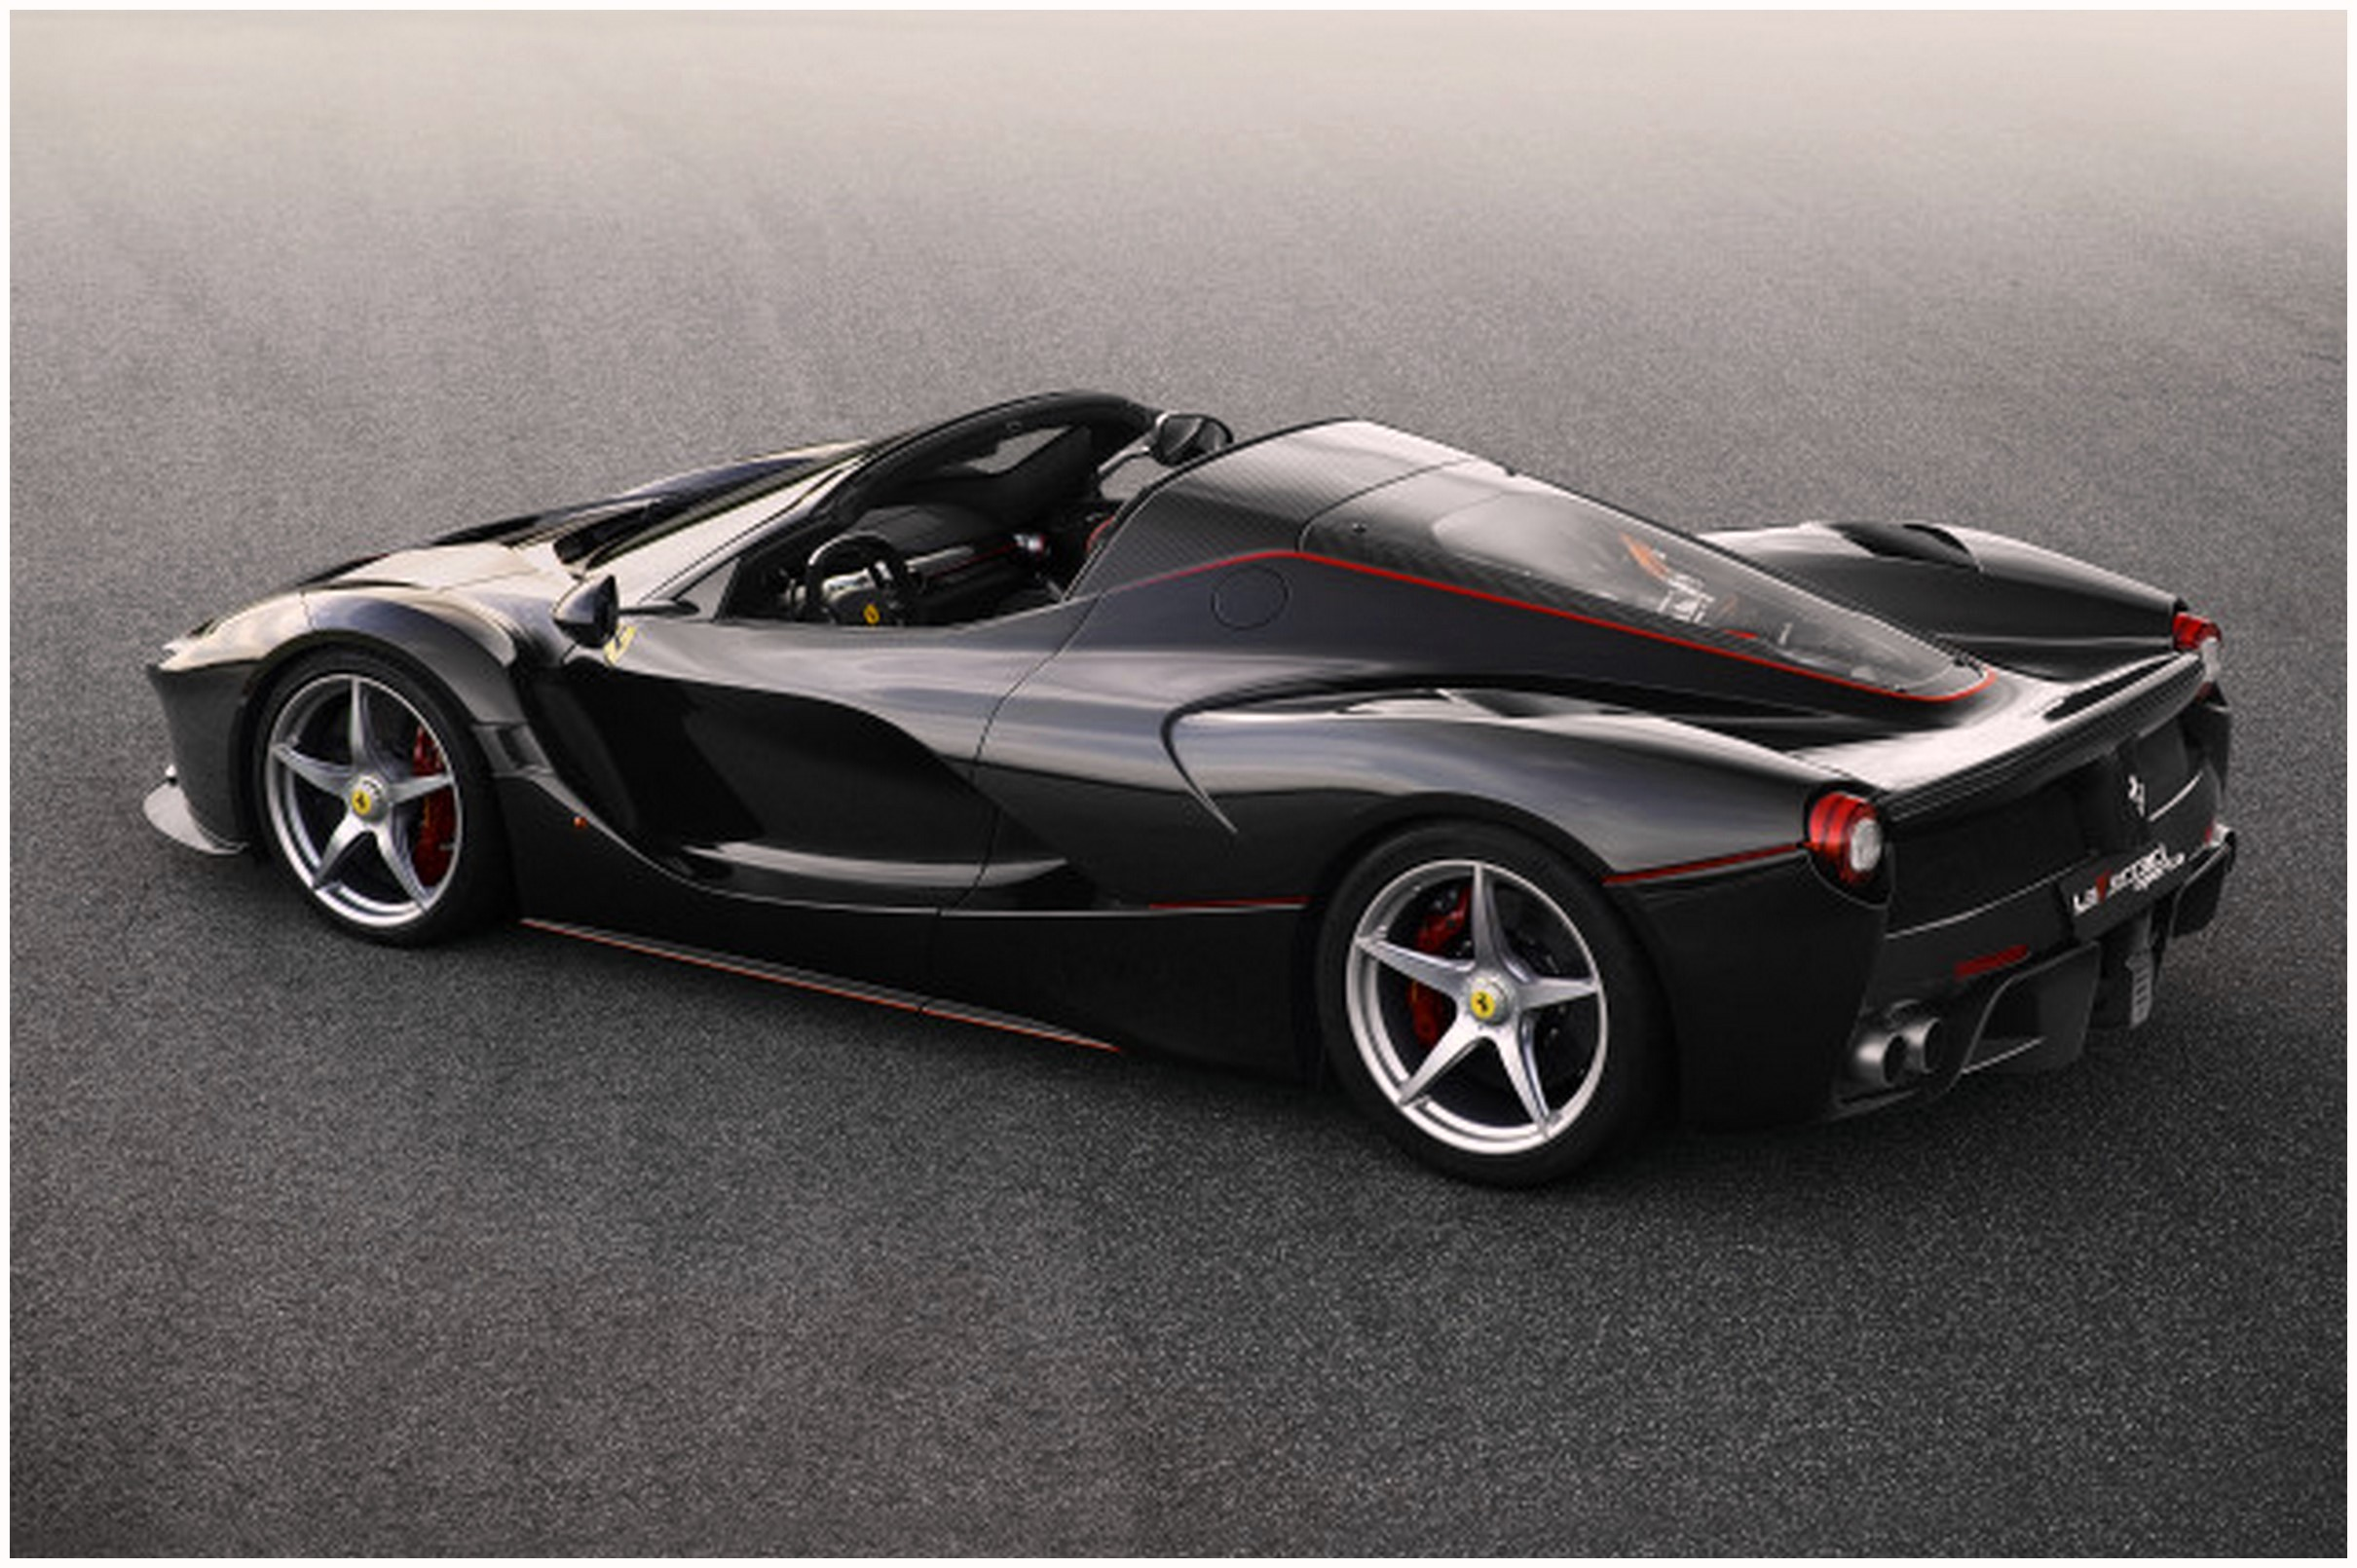 Ferrari LaFerrari Aperta HD wallpapers 4k images download free